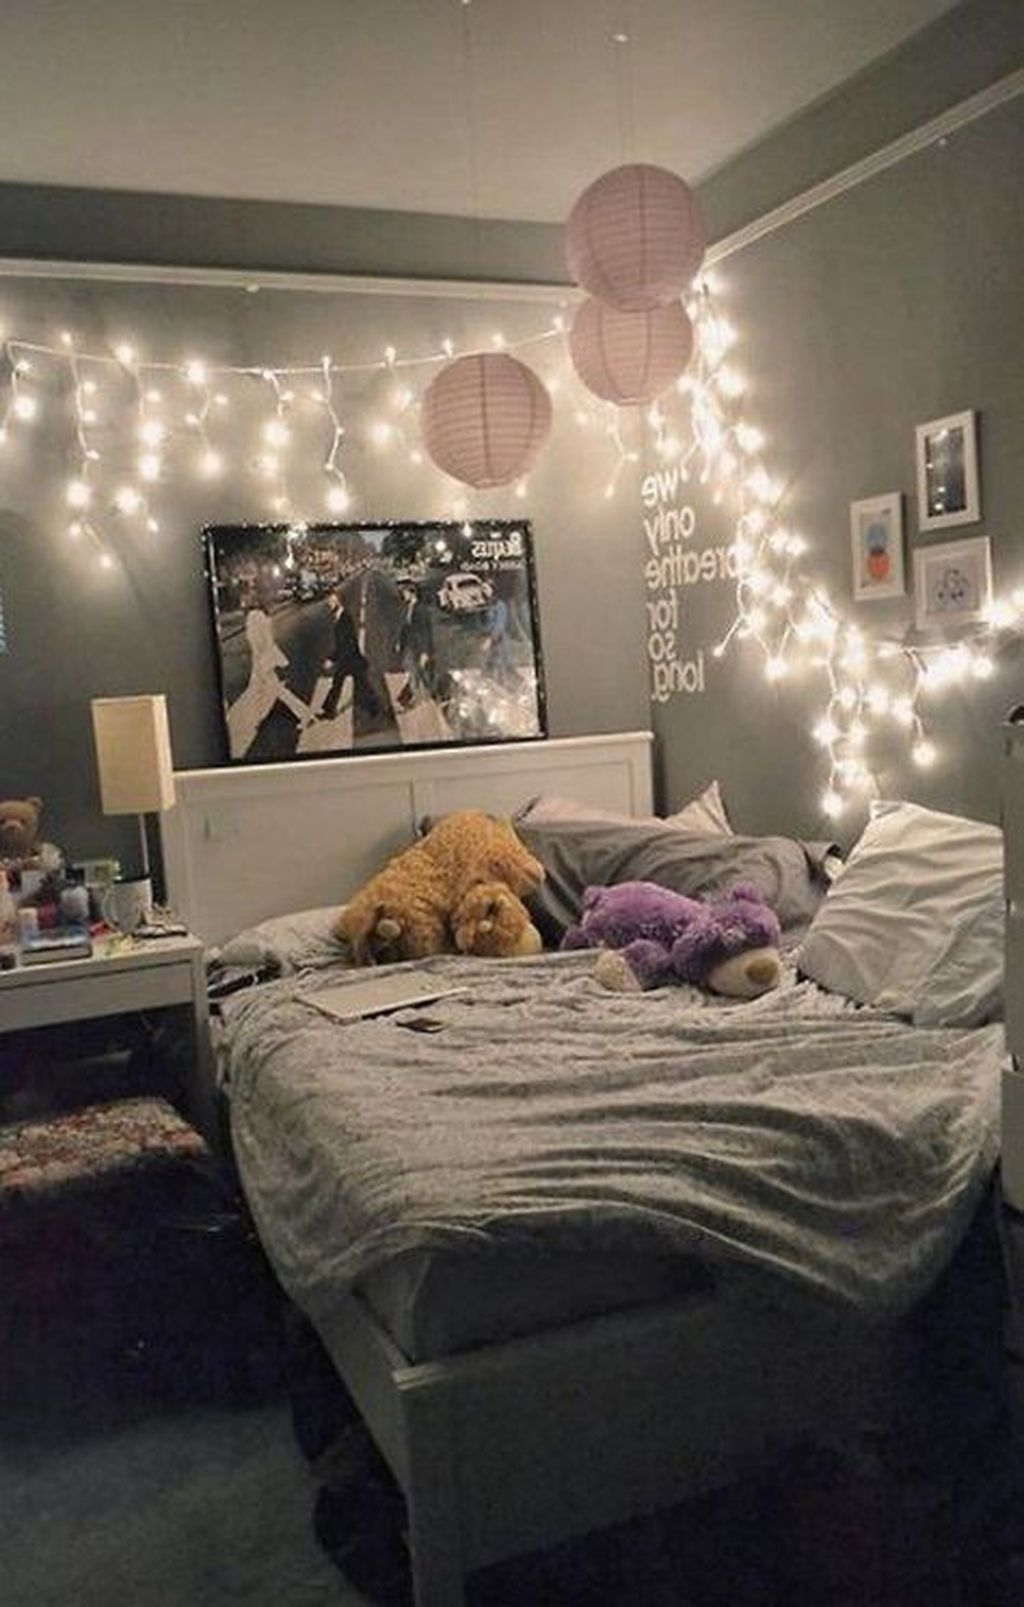 34 The Best Small Bedroom Ideas For Couples Girl bedroom